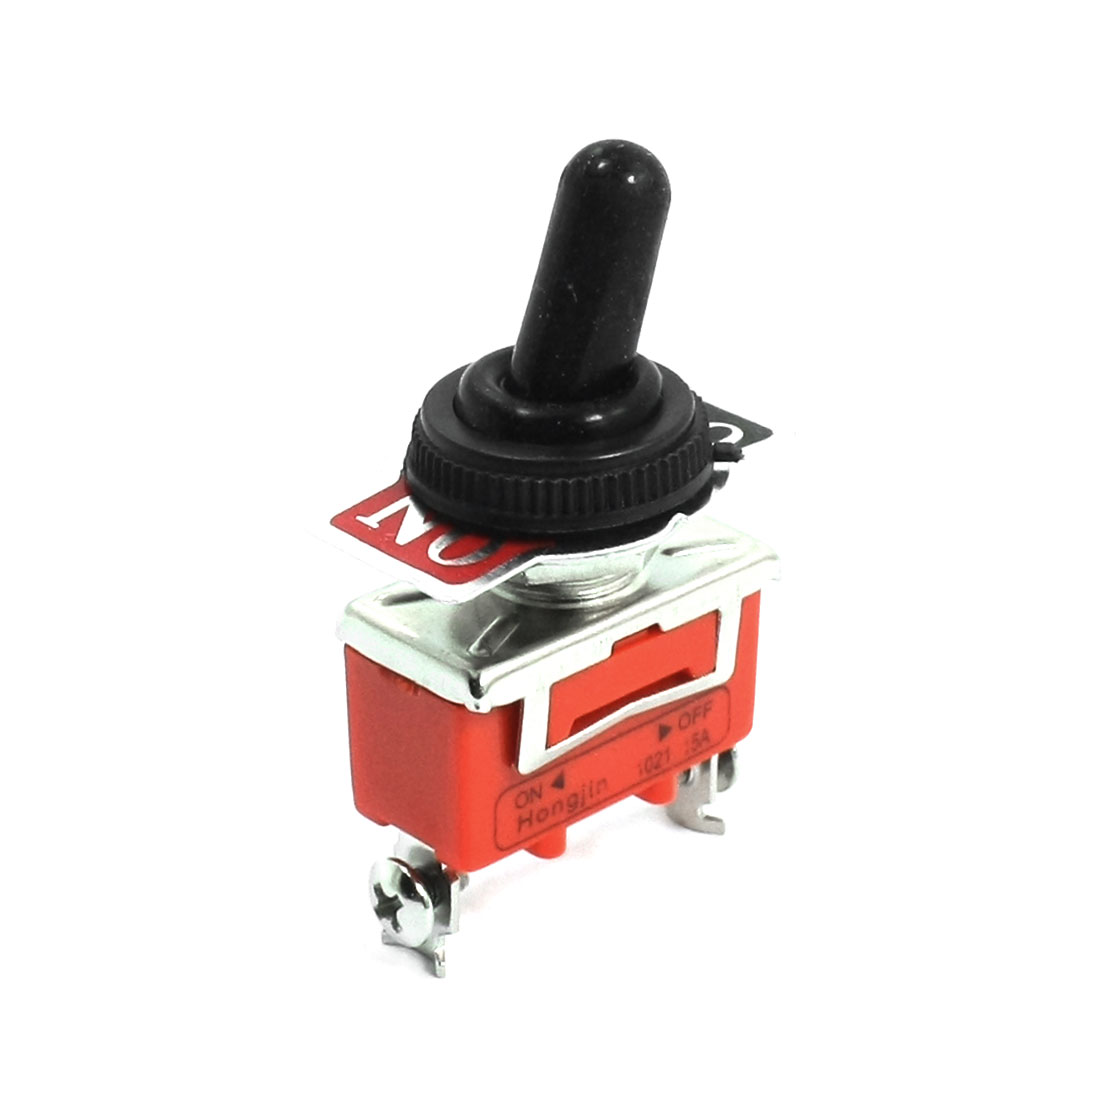 AC 250V 15A 12mm Dia Thread SPST 2 Screw Terminals 2-Position Waterproof Cover Toggle Switch